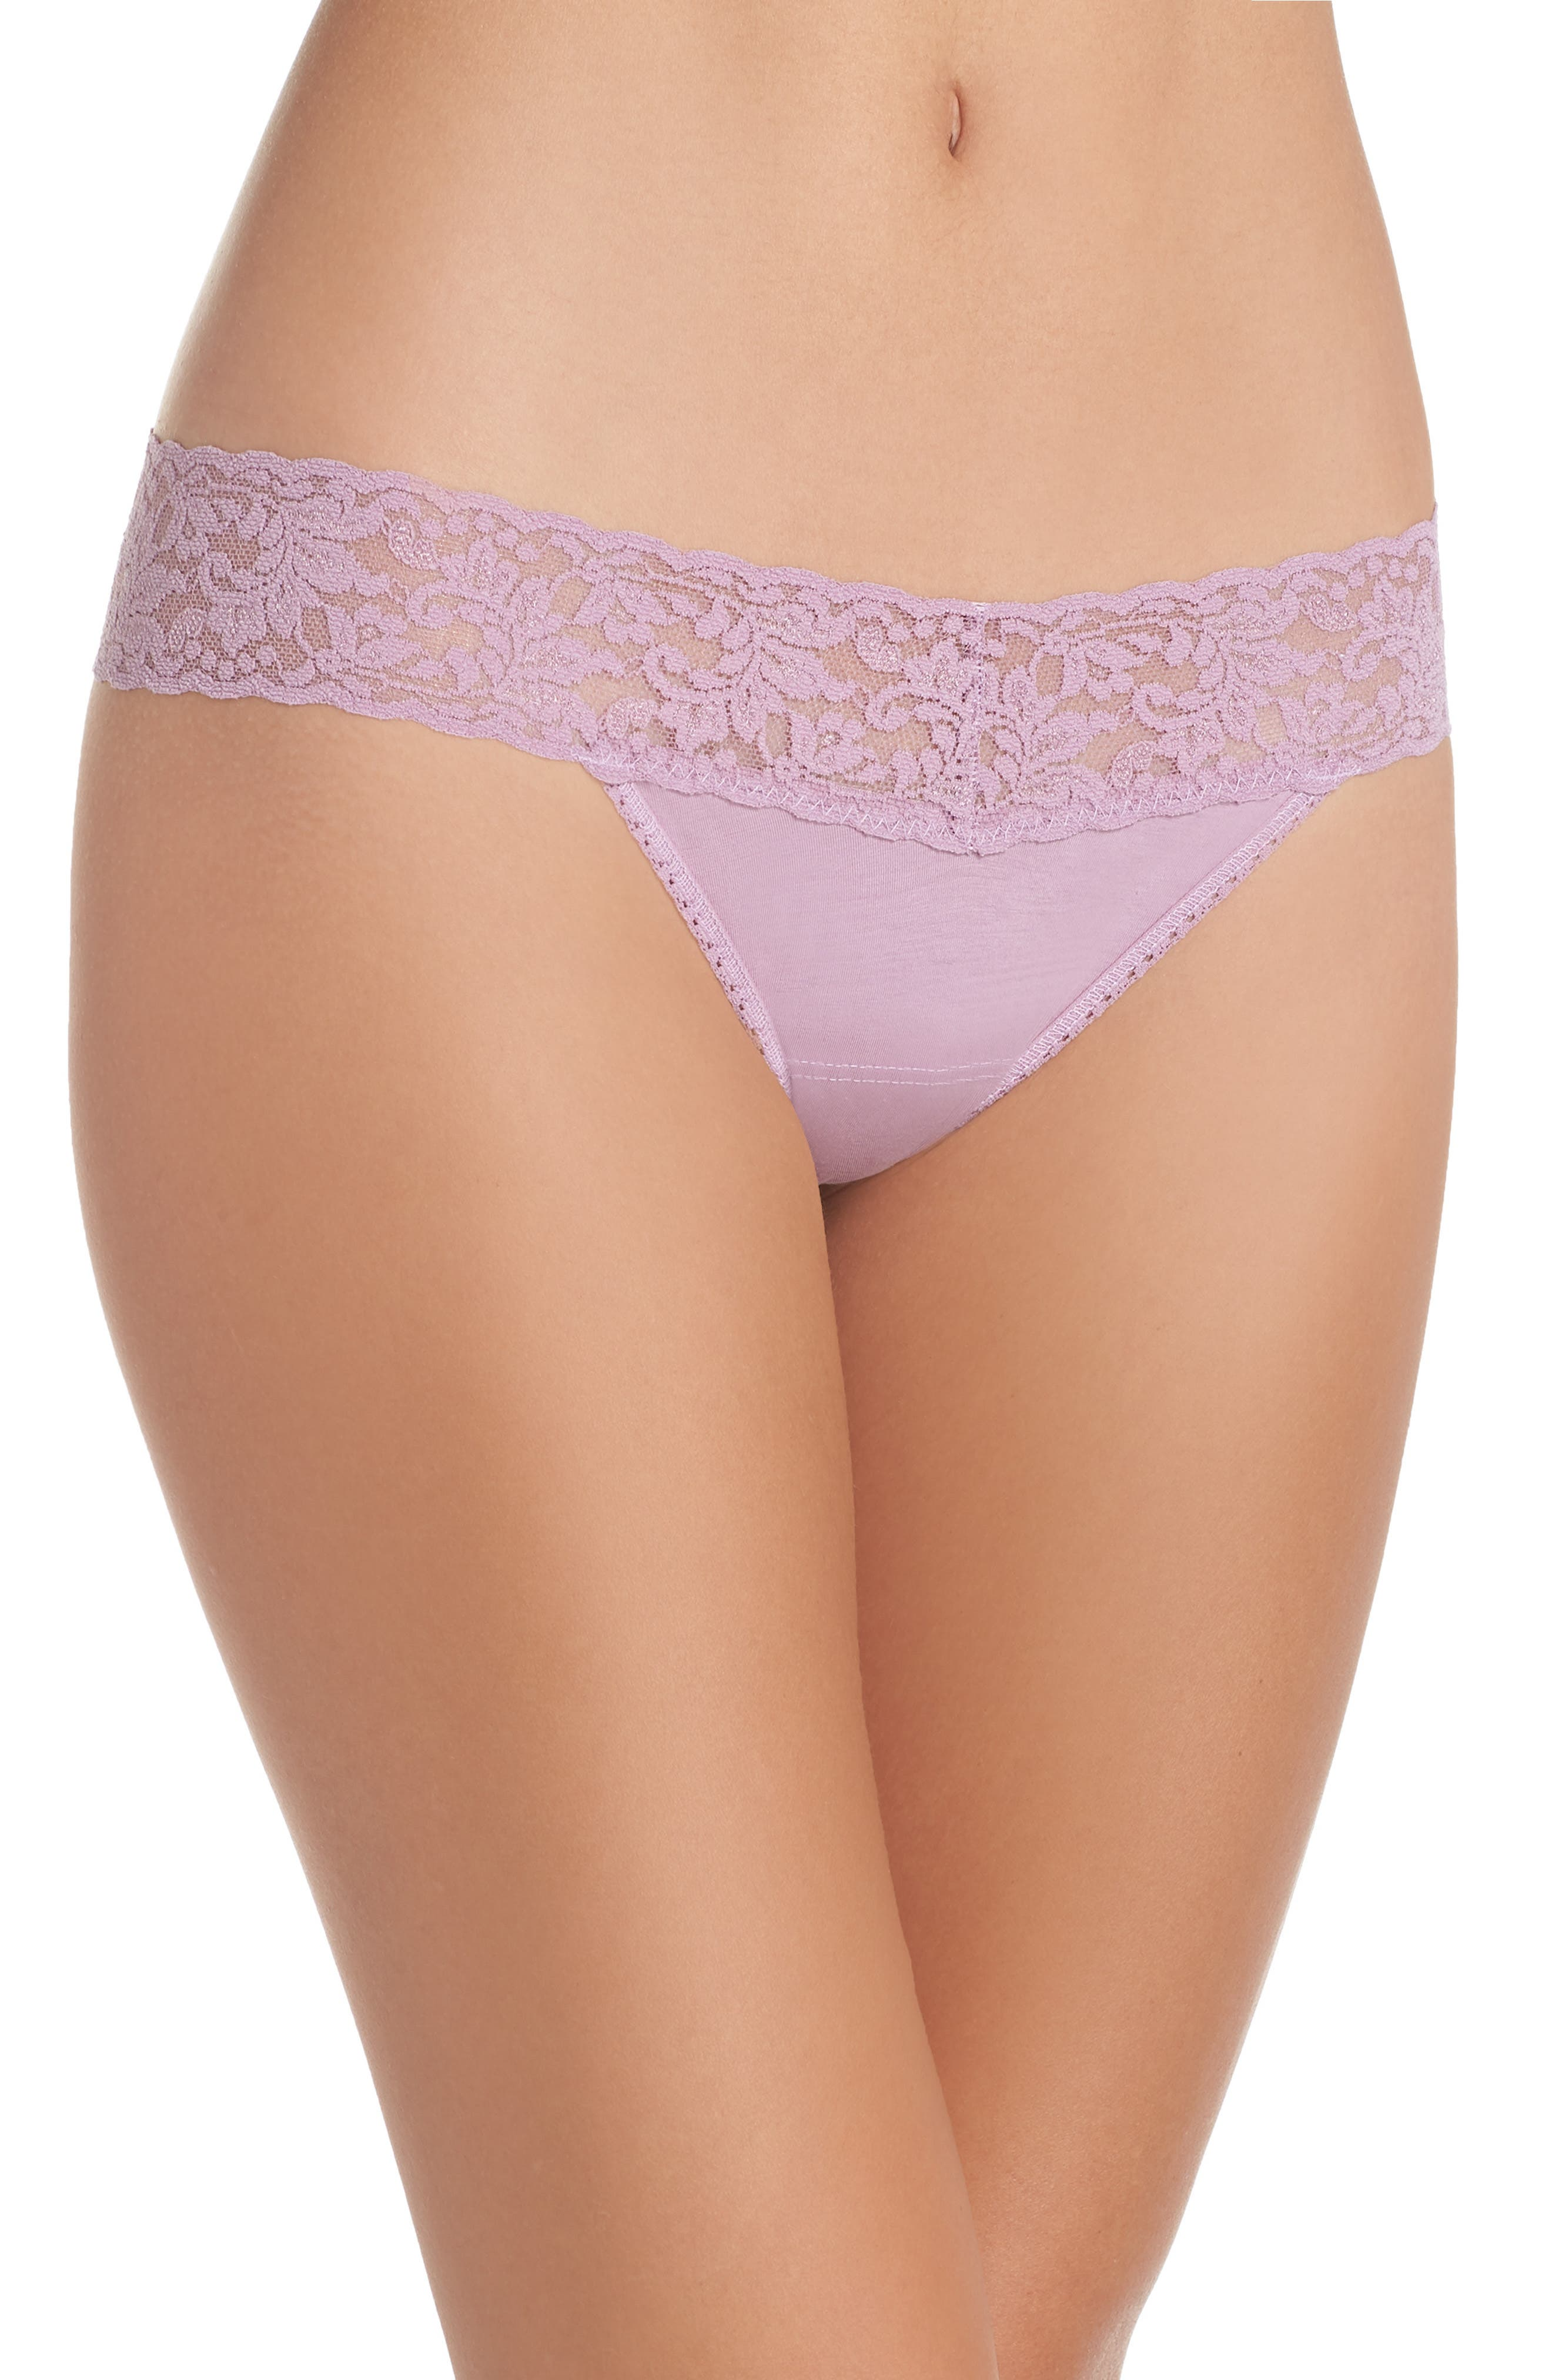 Low Rise Thong,                         Main,                         color, WATER LILY